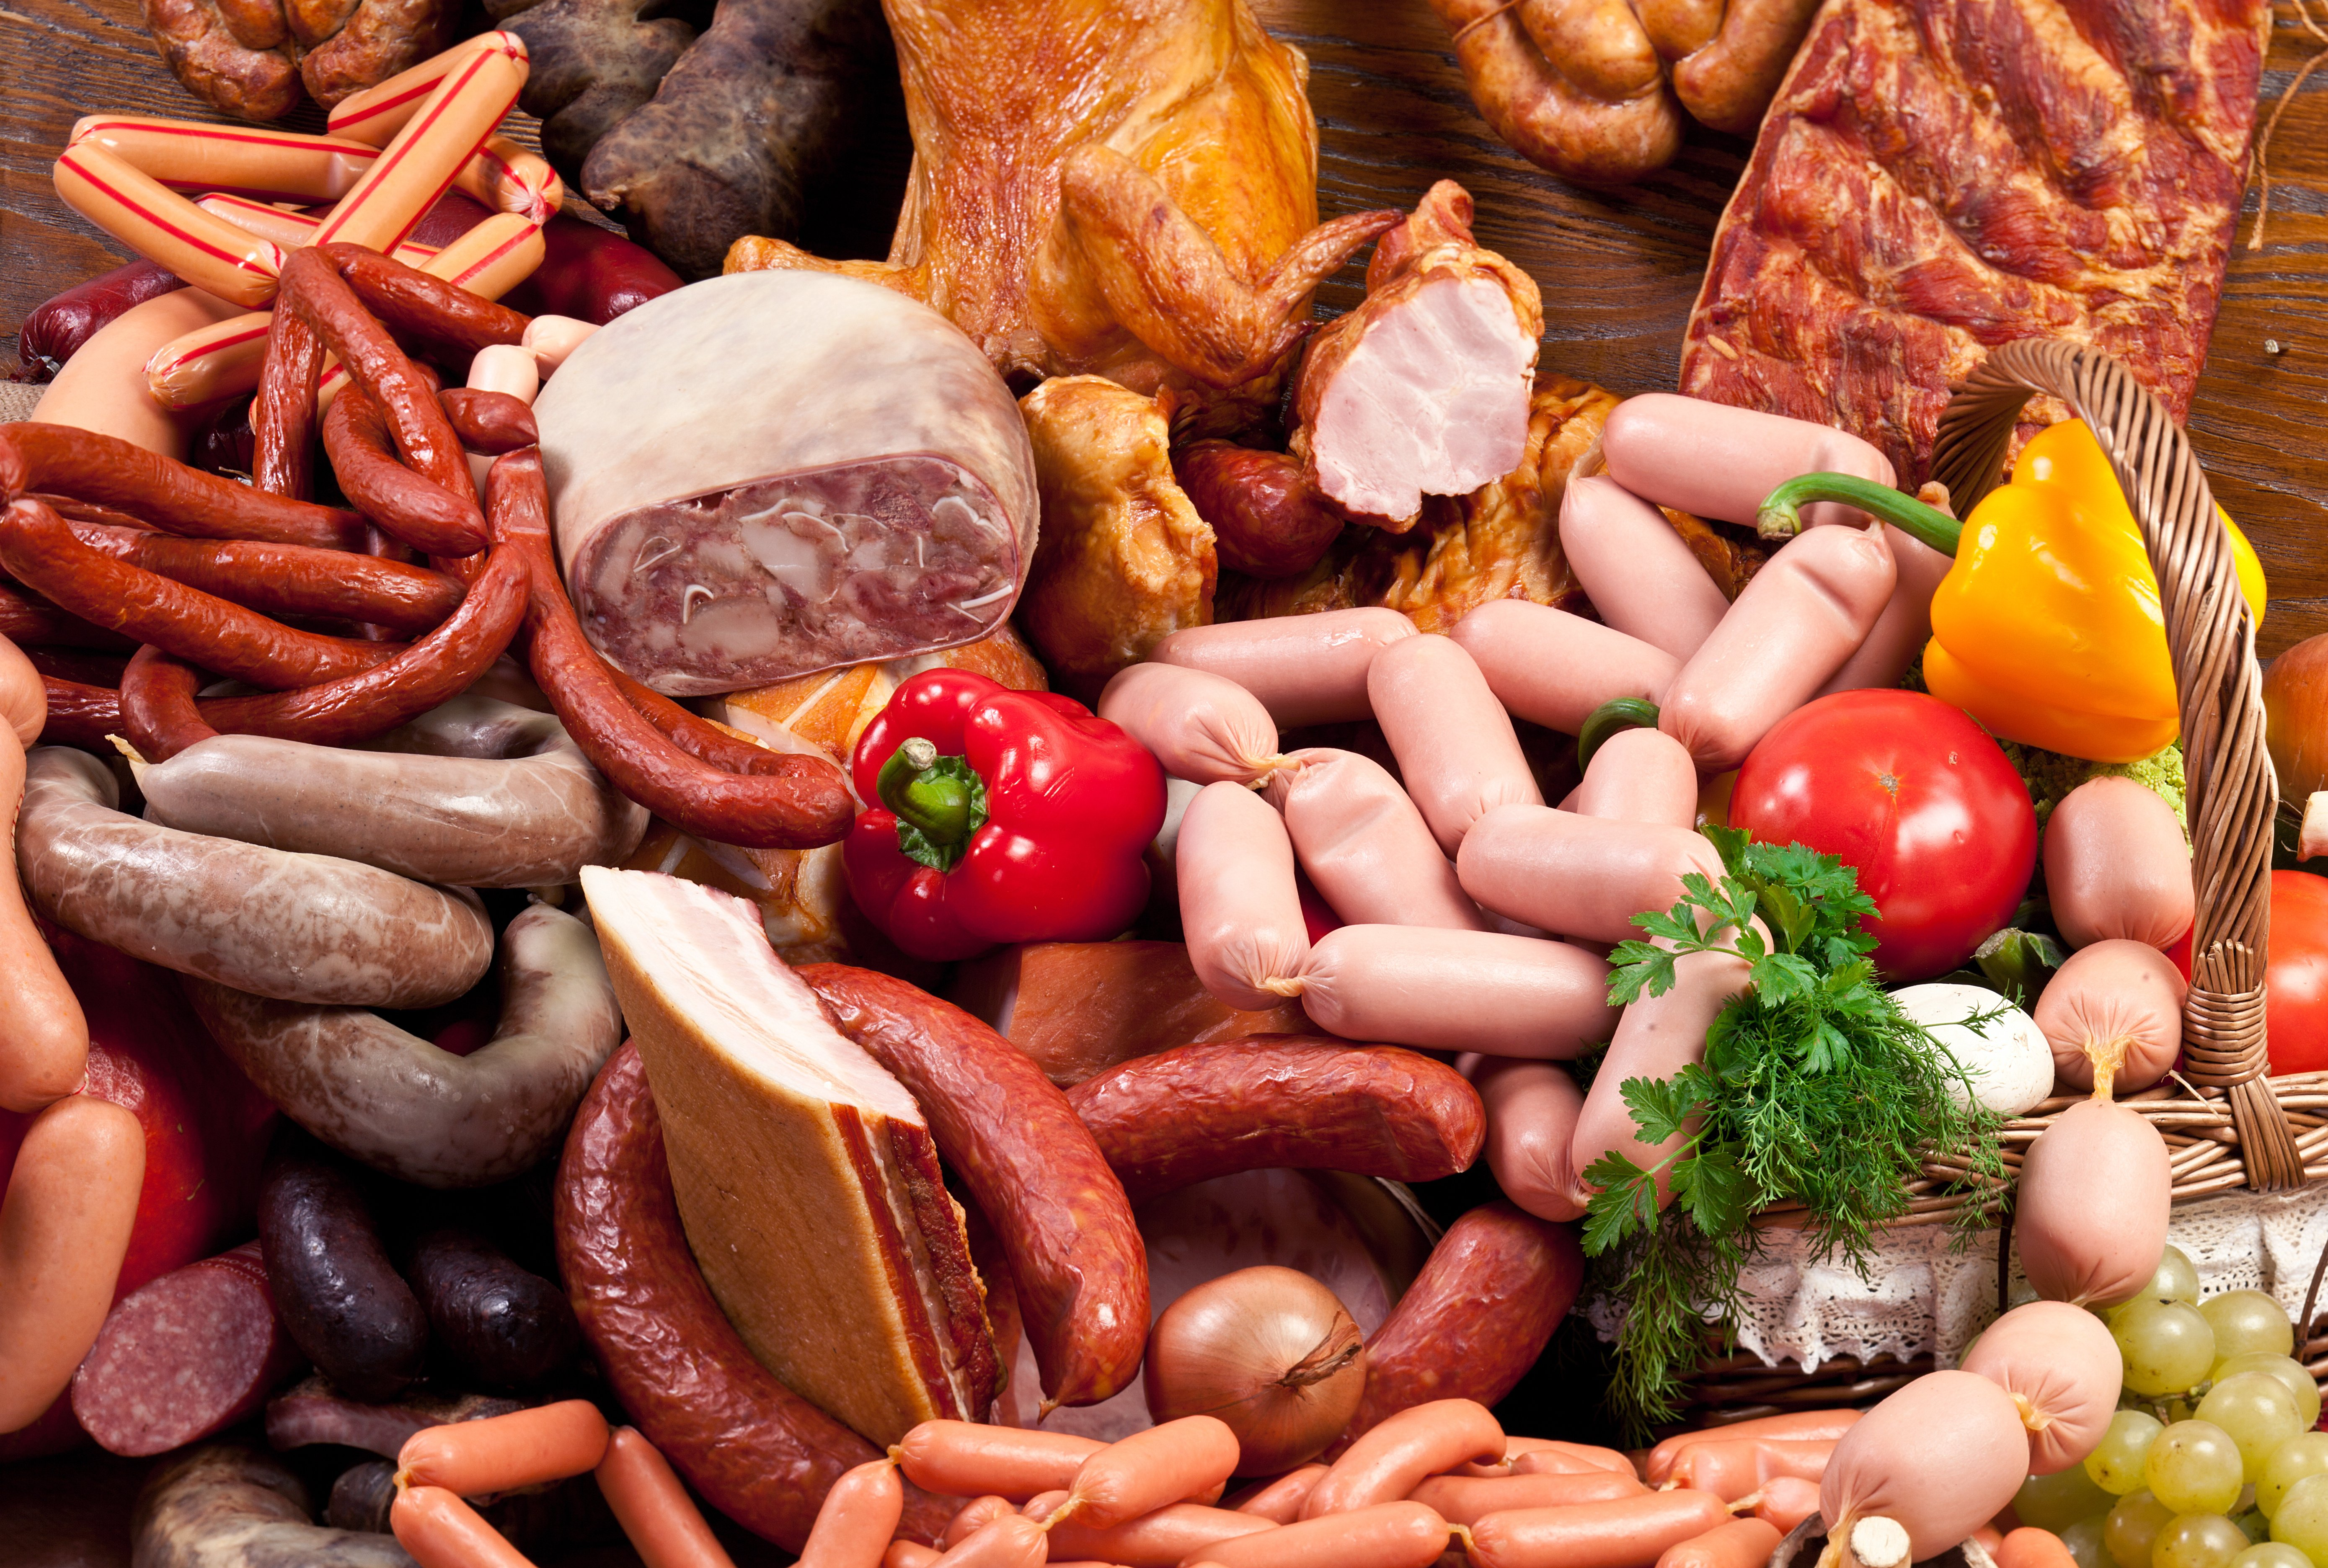 Image Sausage Ham Vienna sausage Food Pepper Meat products 5557x3744 5557x3744